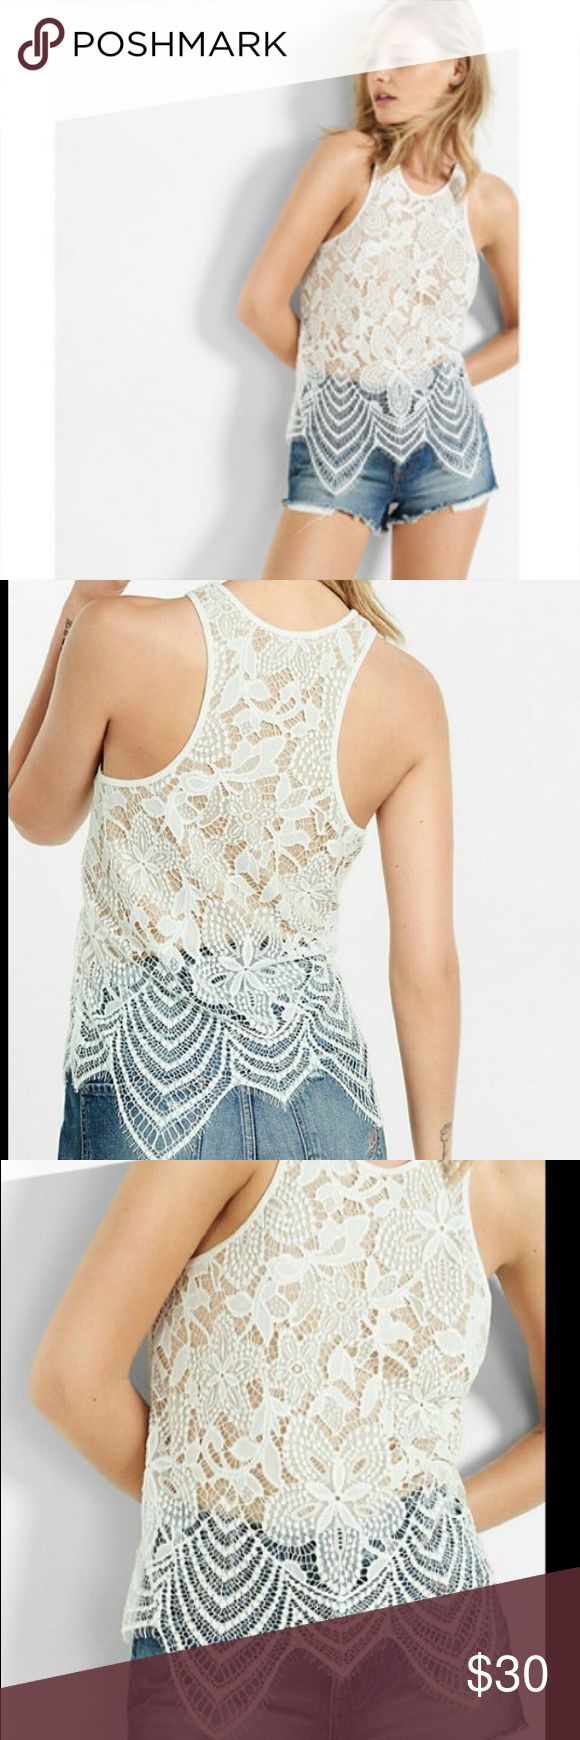 Express Lace Tank Top Express Ivory All Over Scalloped Lace Tank Top. Shell: 100% Nylon.  Lining: 60% Cotton / 40% Modal Express Tops Tank Tops